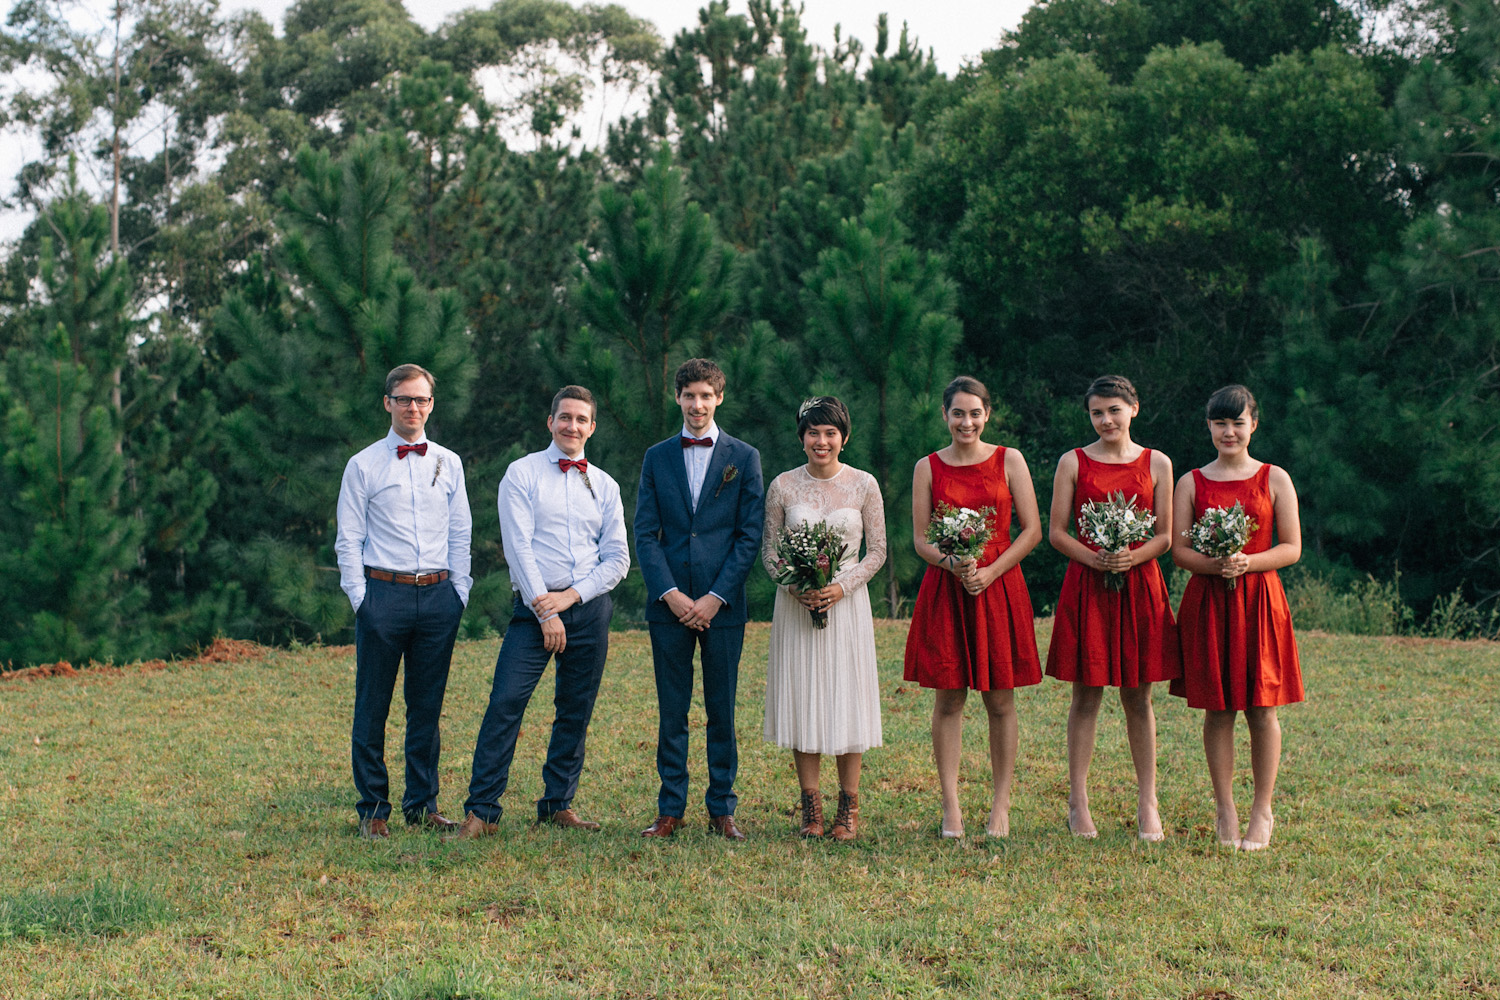 jazzyconnorsphotography_emily&lachlan185.jpg